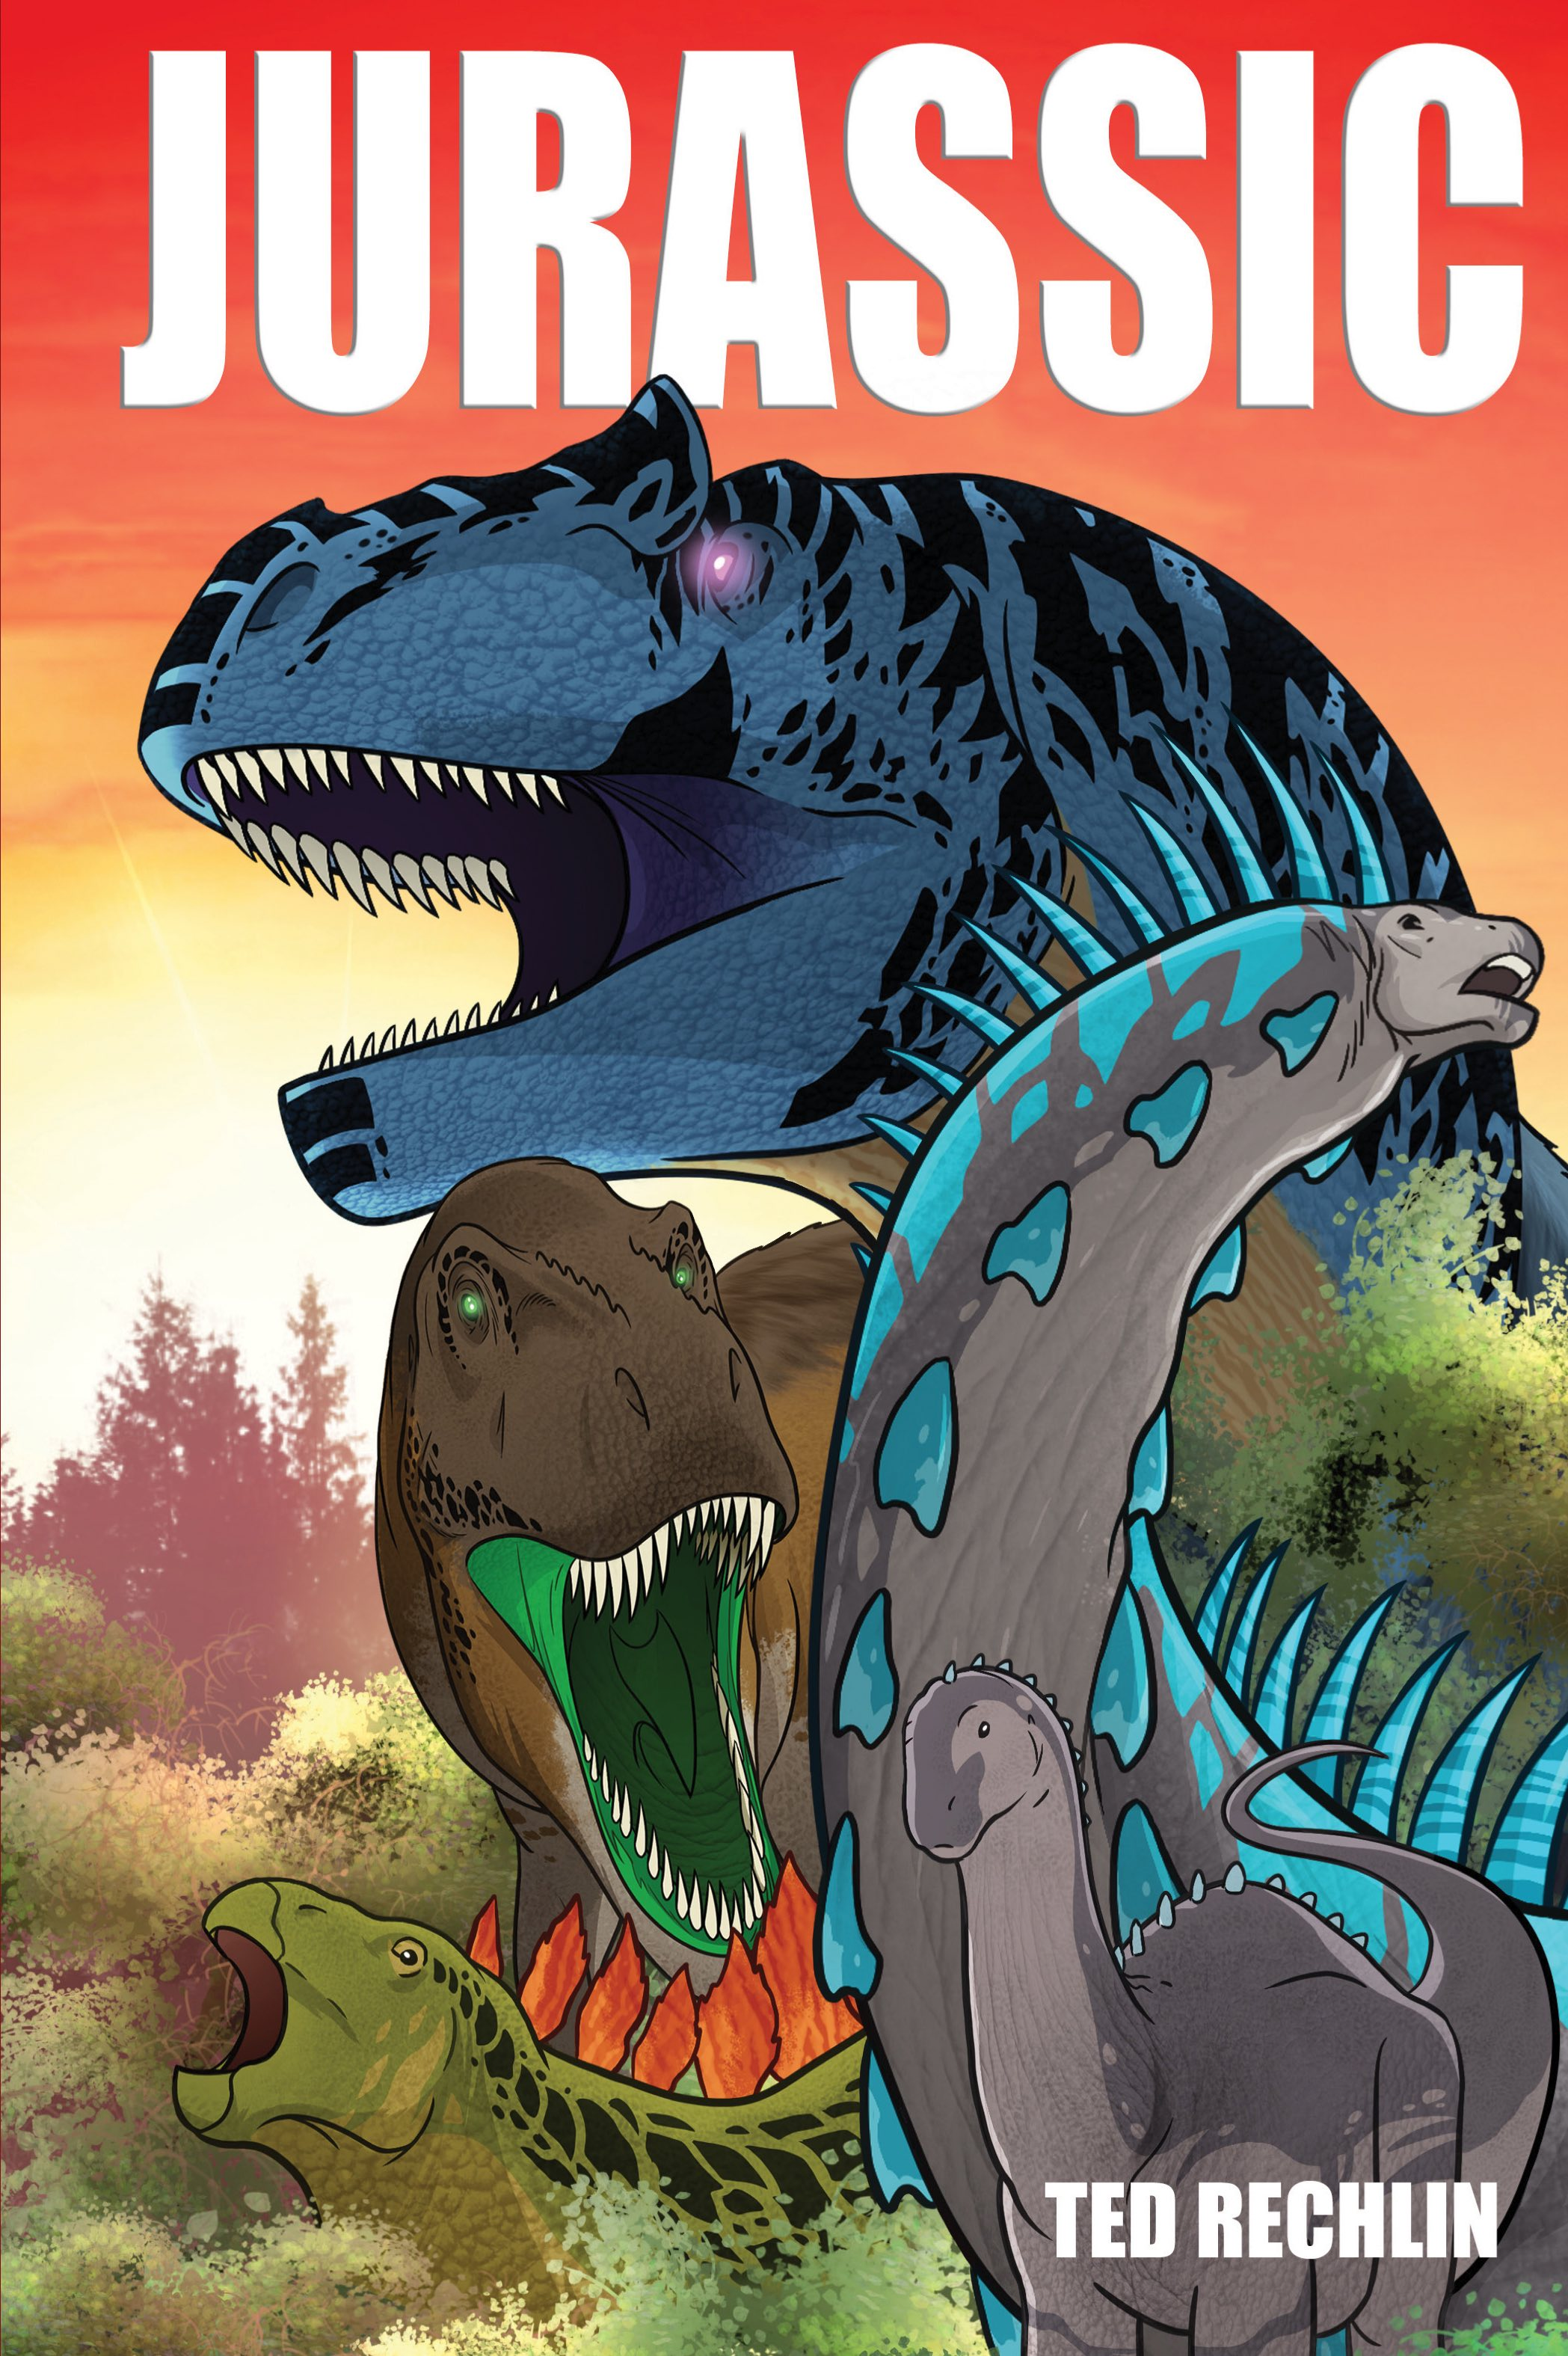 Ted Rechlin - Jurassic Graphic Novel